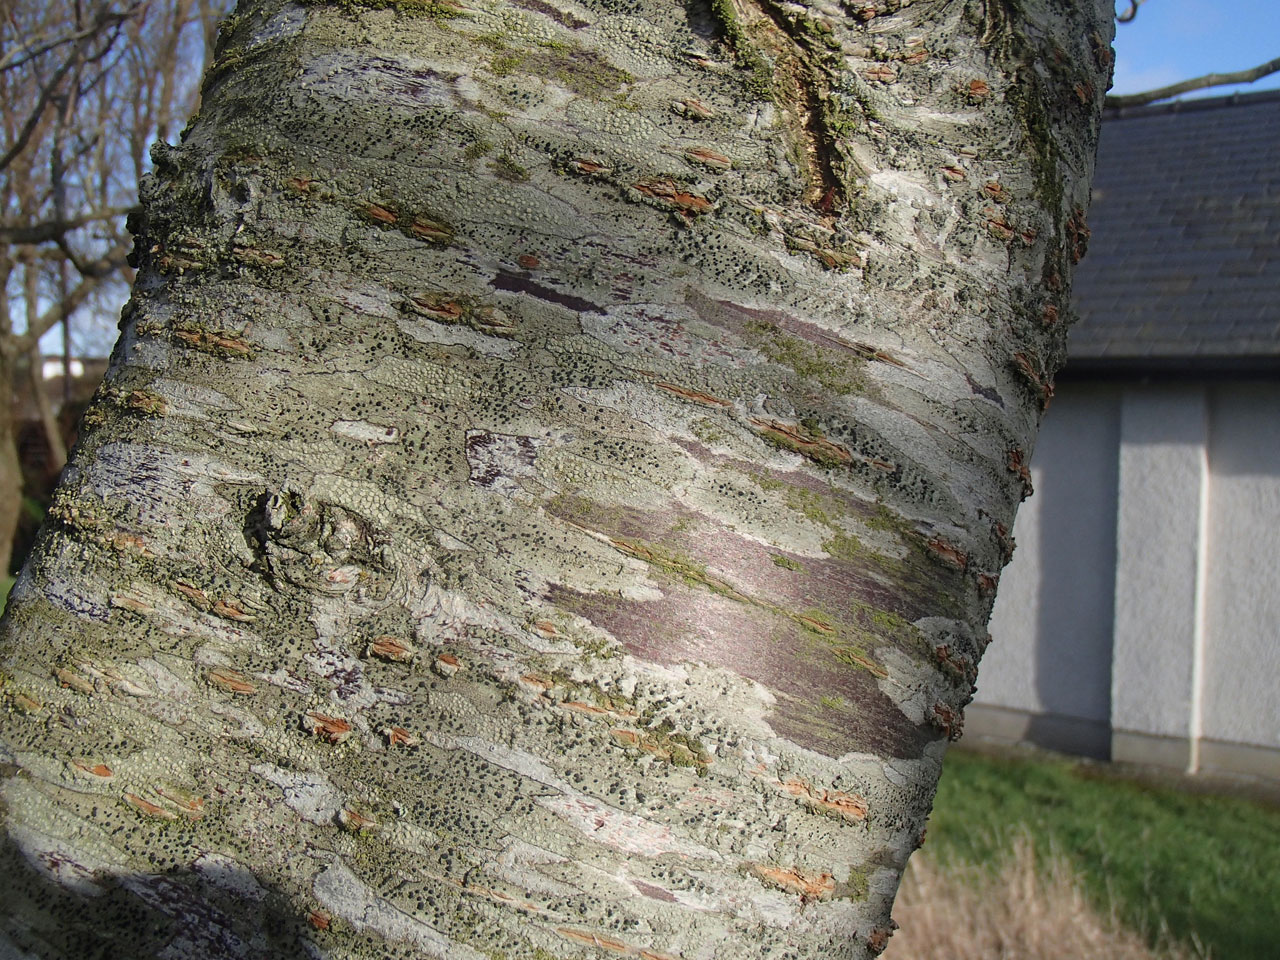 attractive bark on ornamental cherry